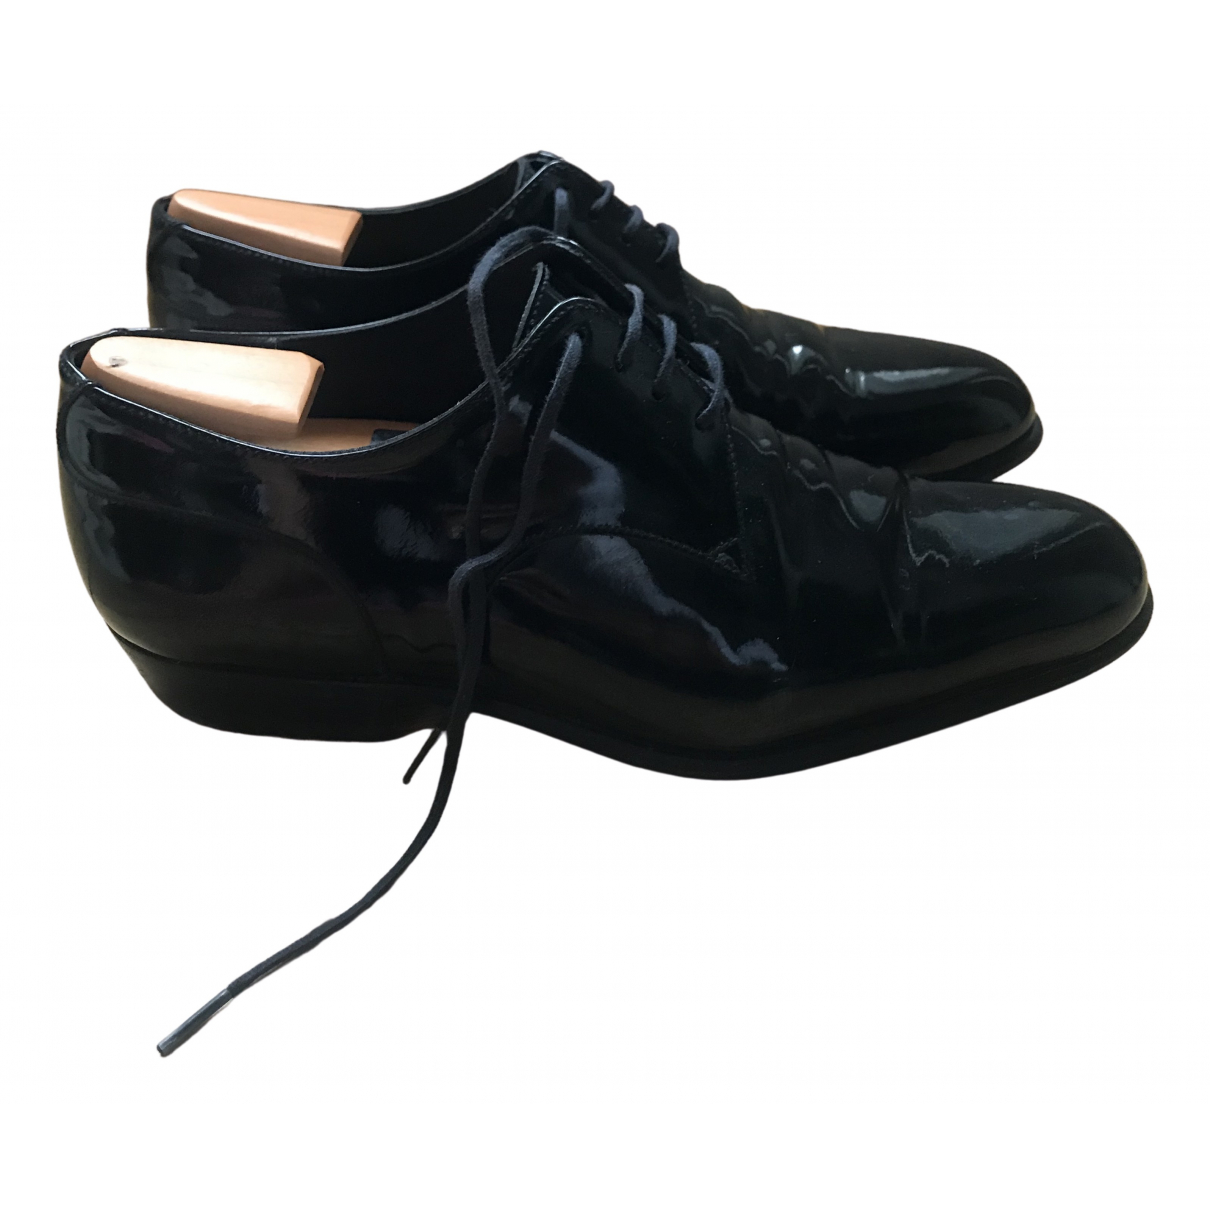 Jm Weston \N Black Patent leather Lace ups for Women 3 UK